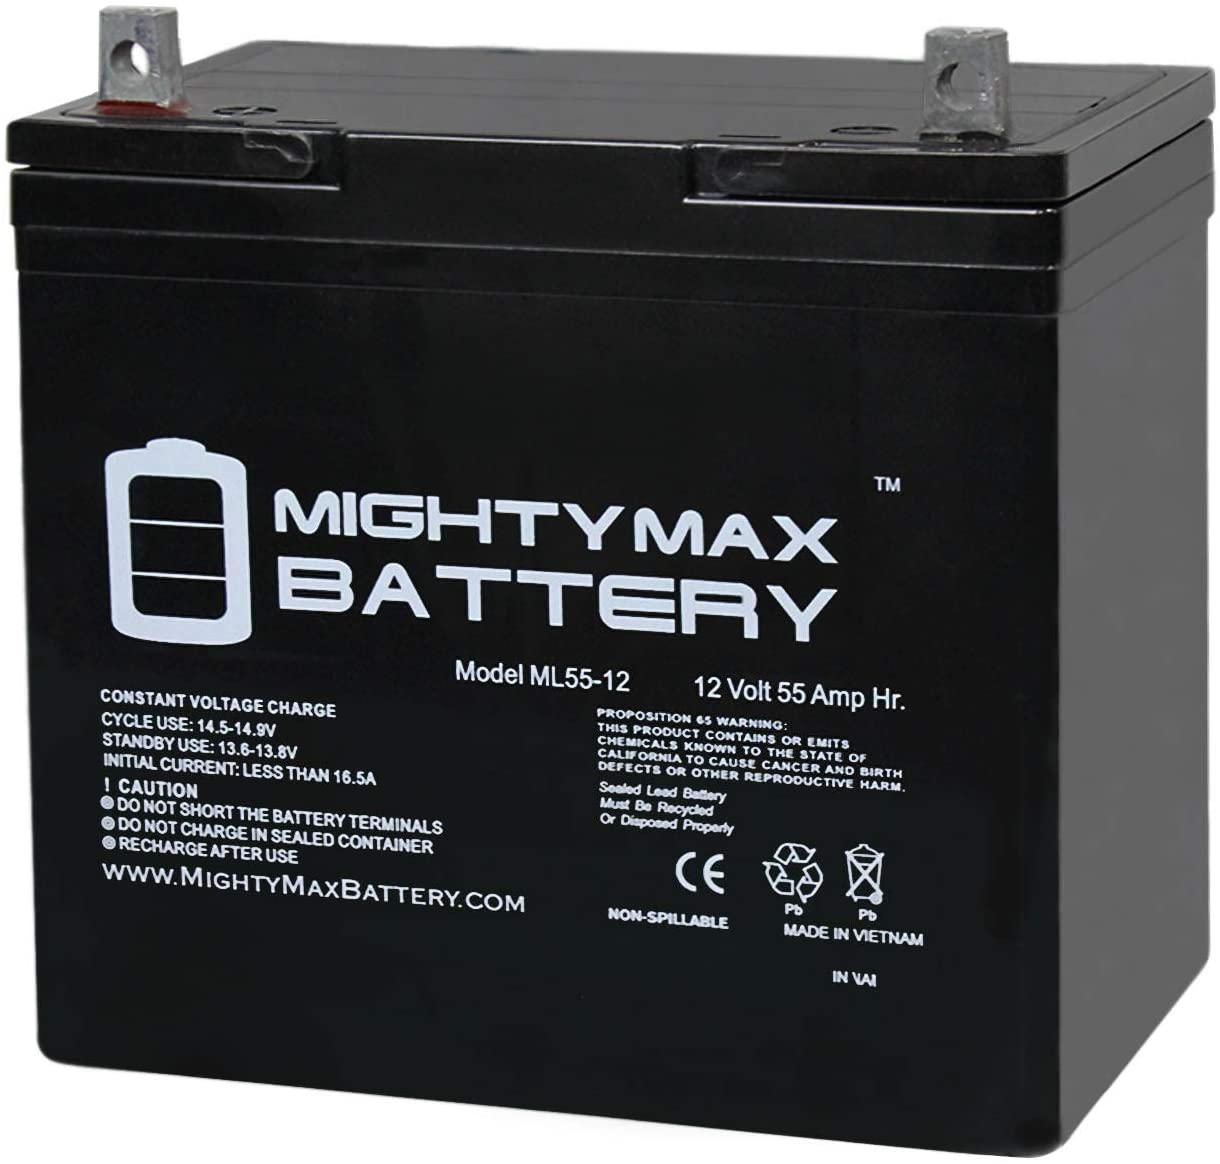 A Mighty Max 12V basic trolling motor battery is shown in this file photo.